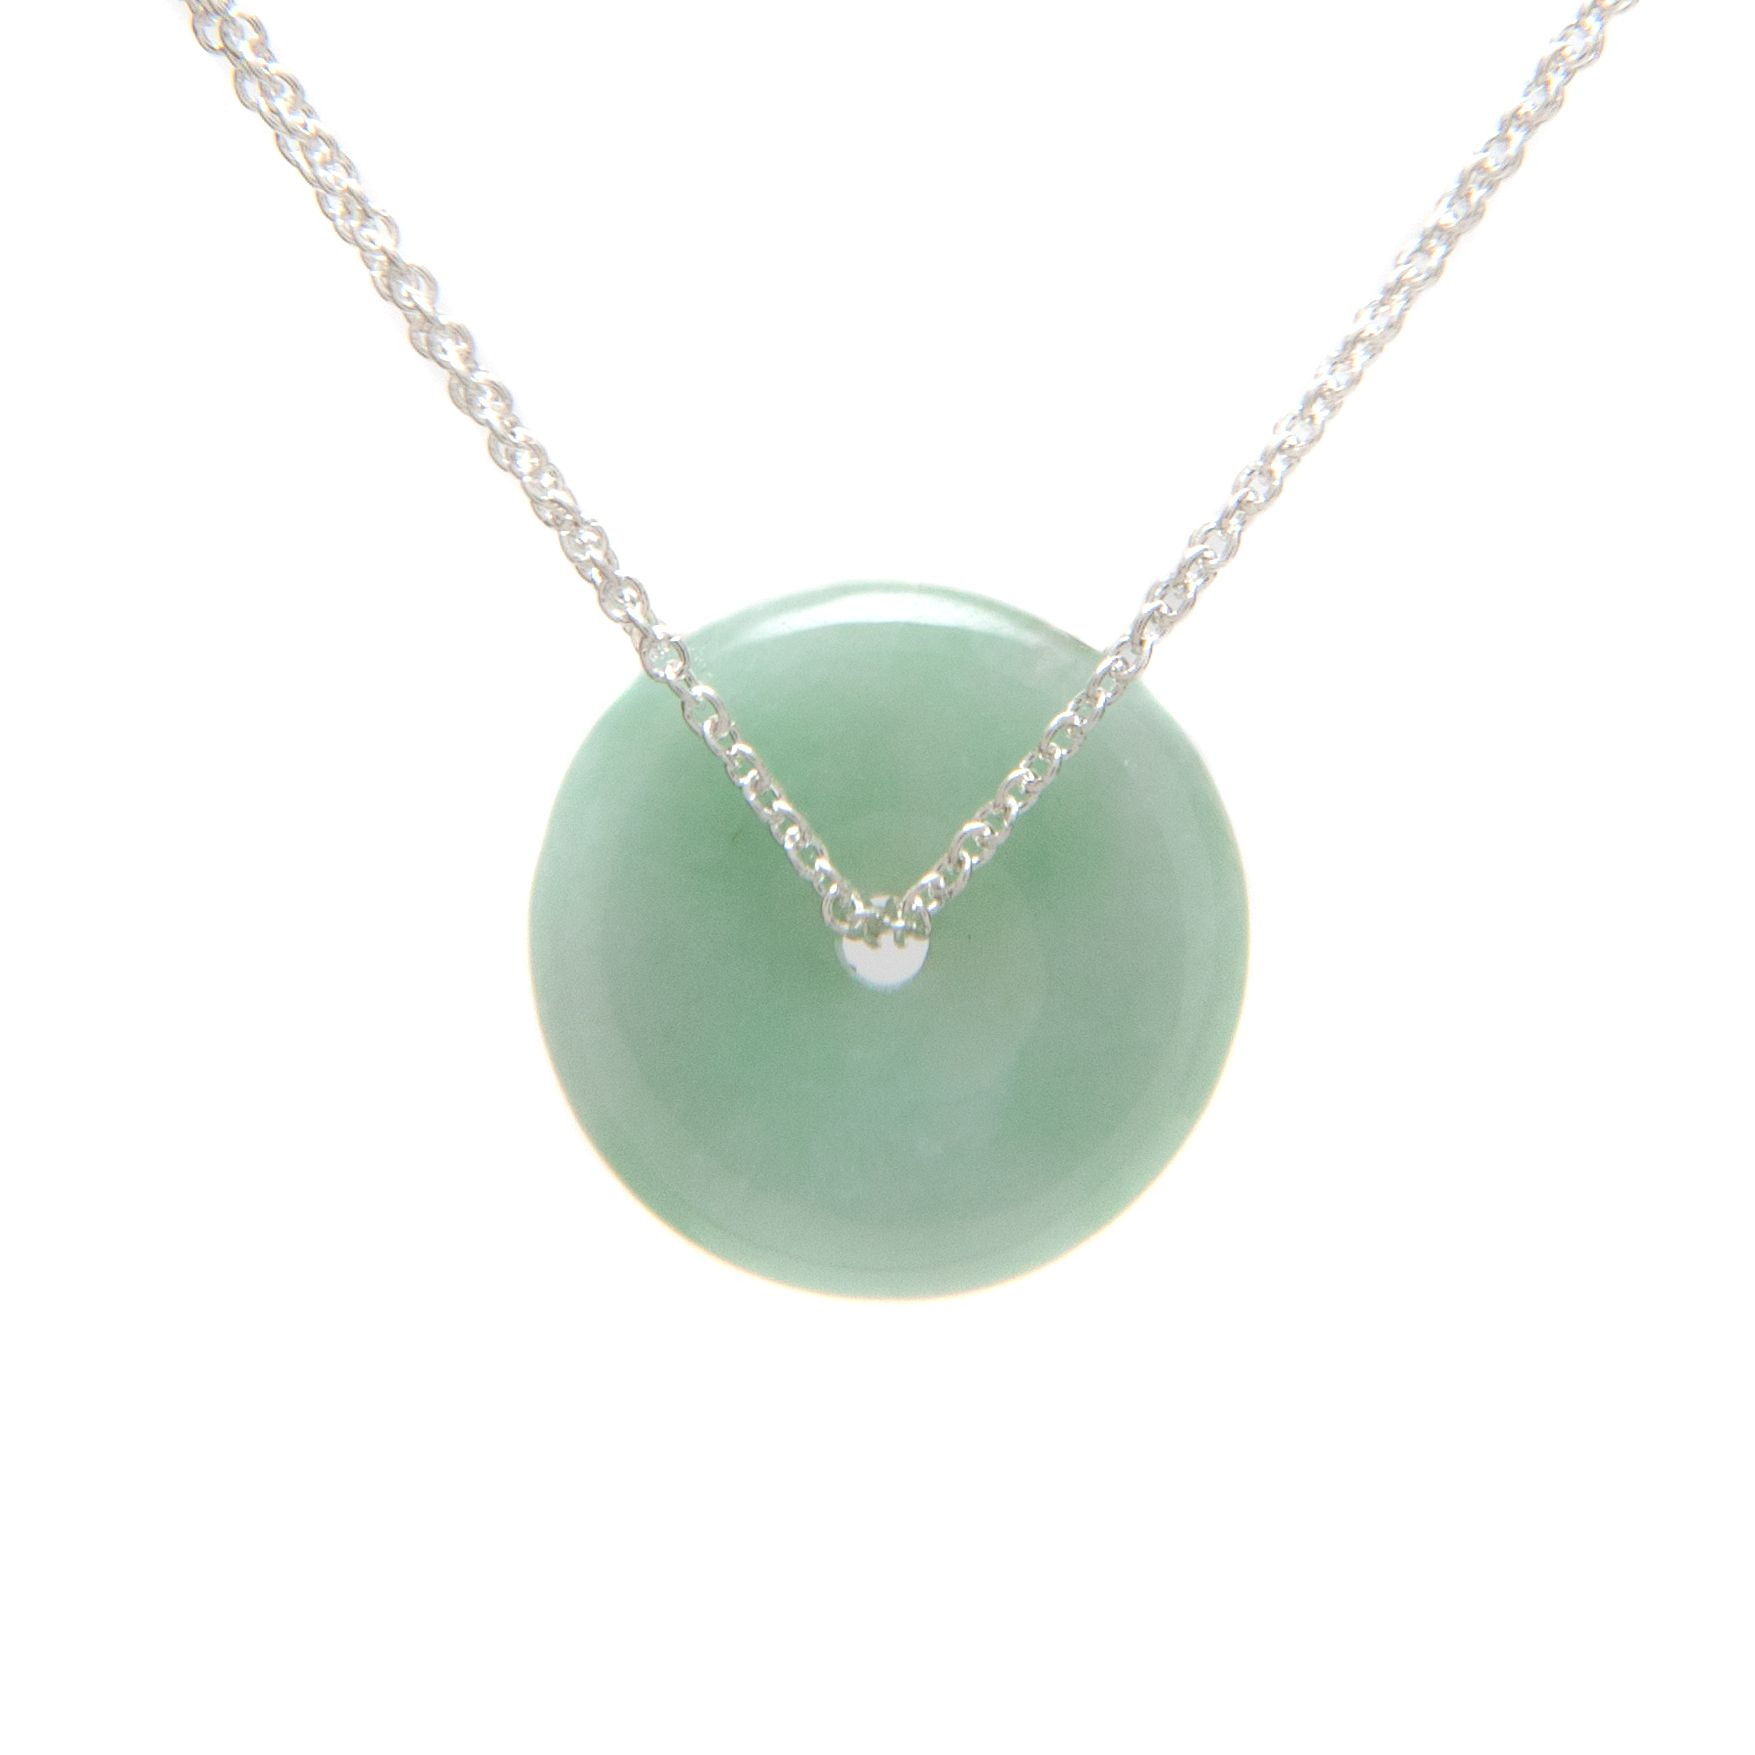 Silver light jade circle necklace gift ideas for me pinterest silver light jade circle necklace mozeypictures Gallery